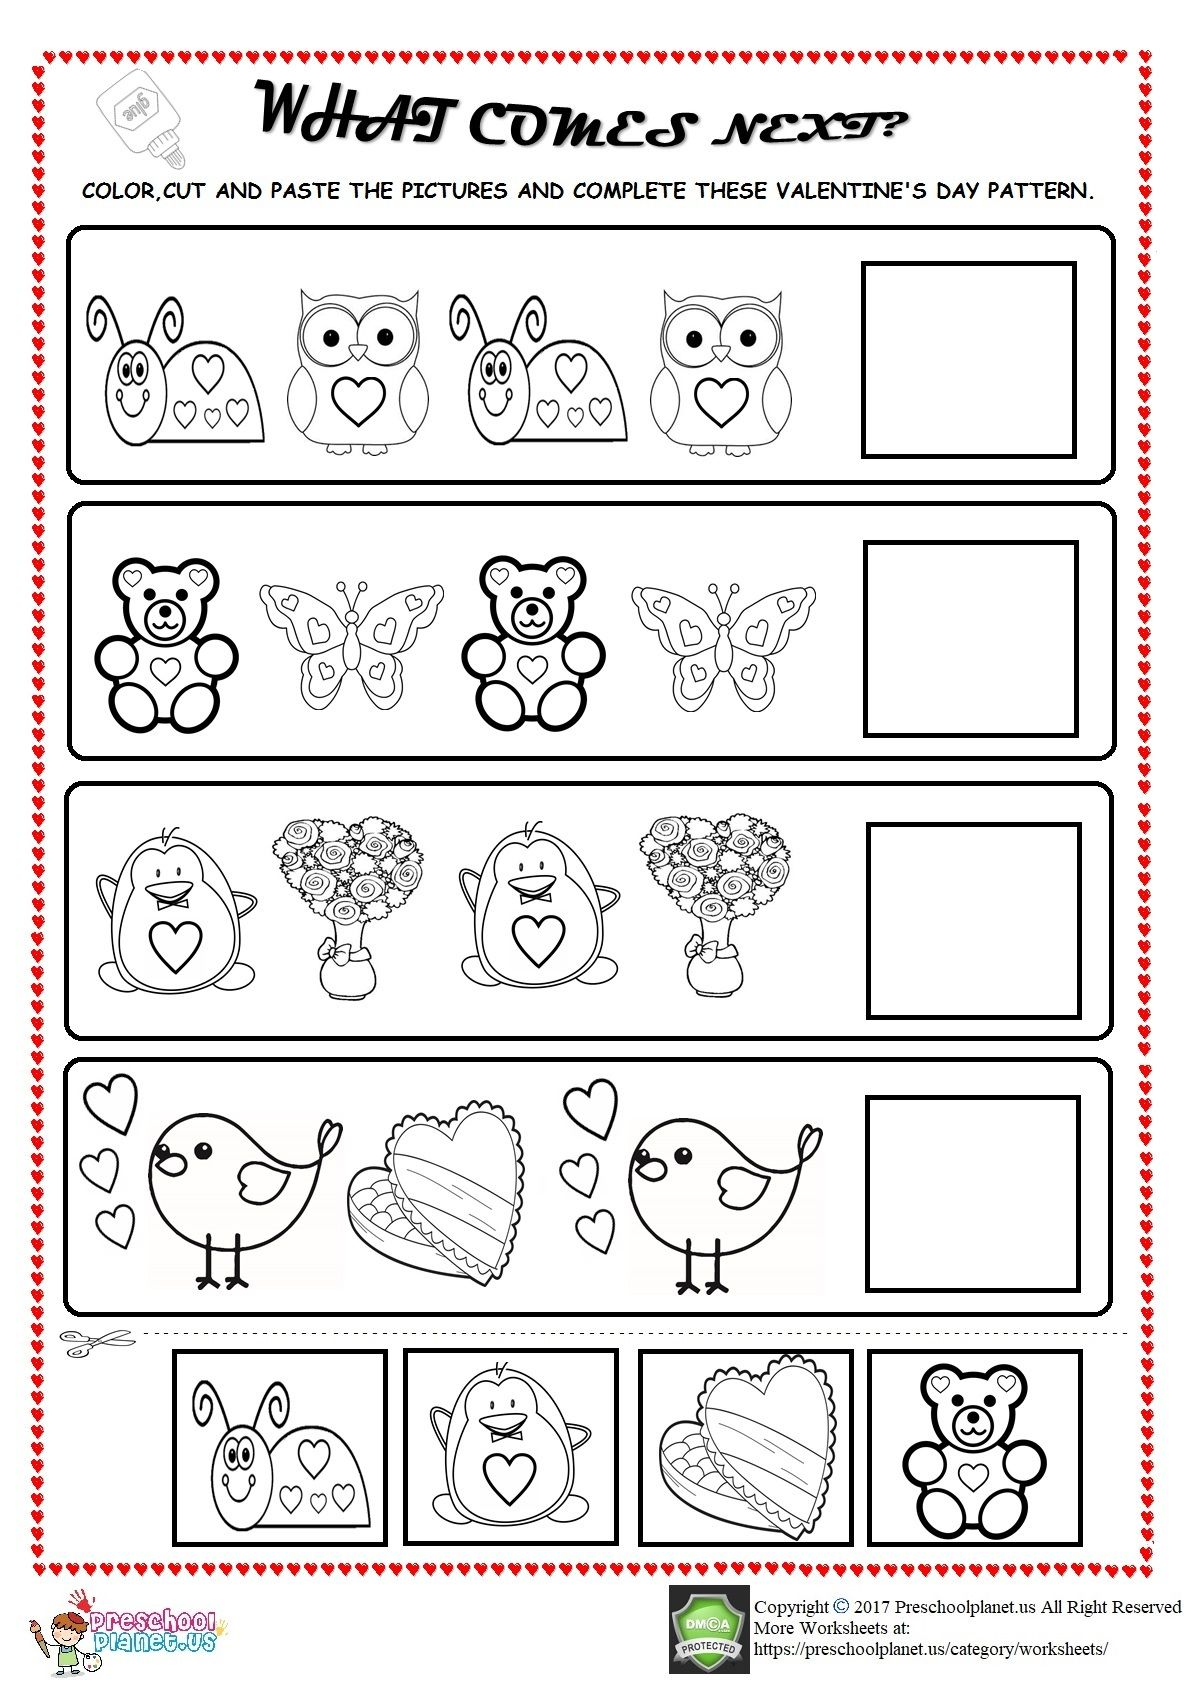 Valentine S Day Pattern Worksheet For Kids In